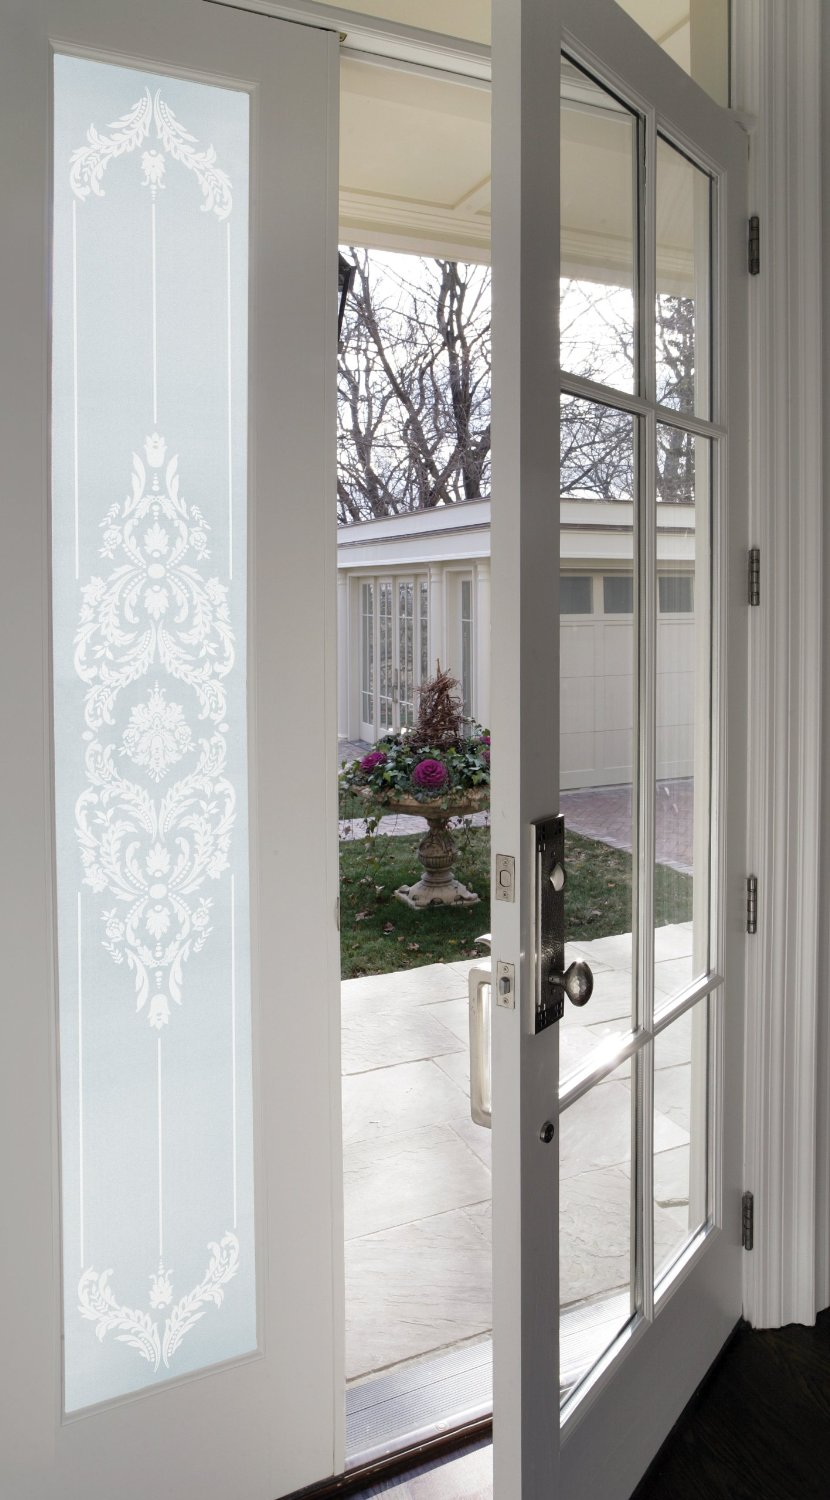 Chateau Textured Decorative Window Film Artscape